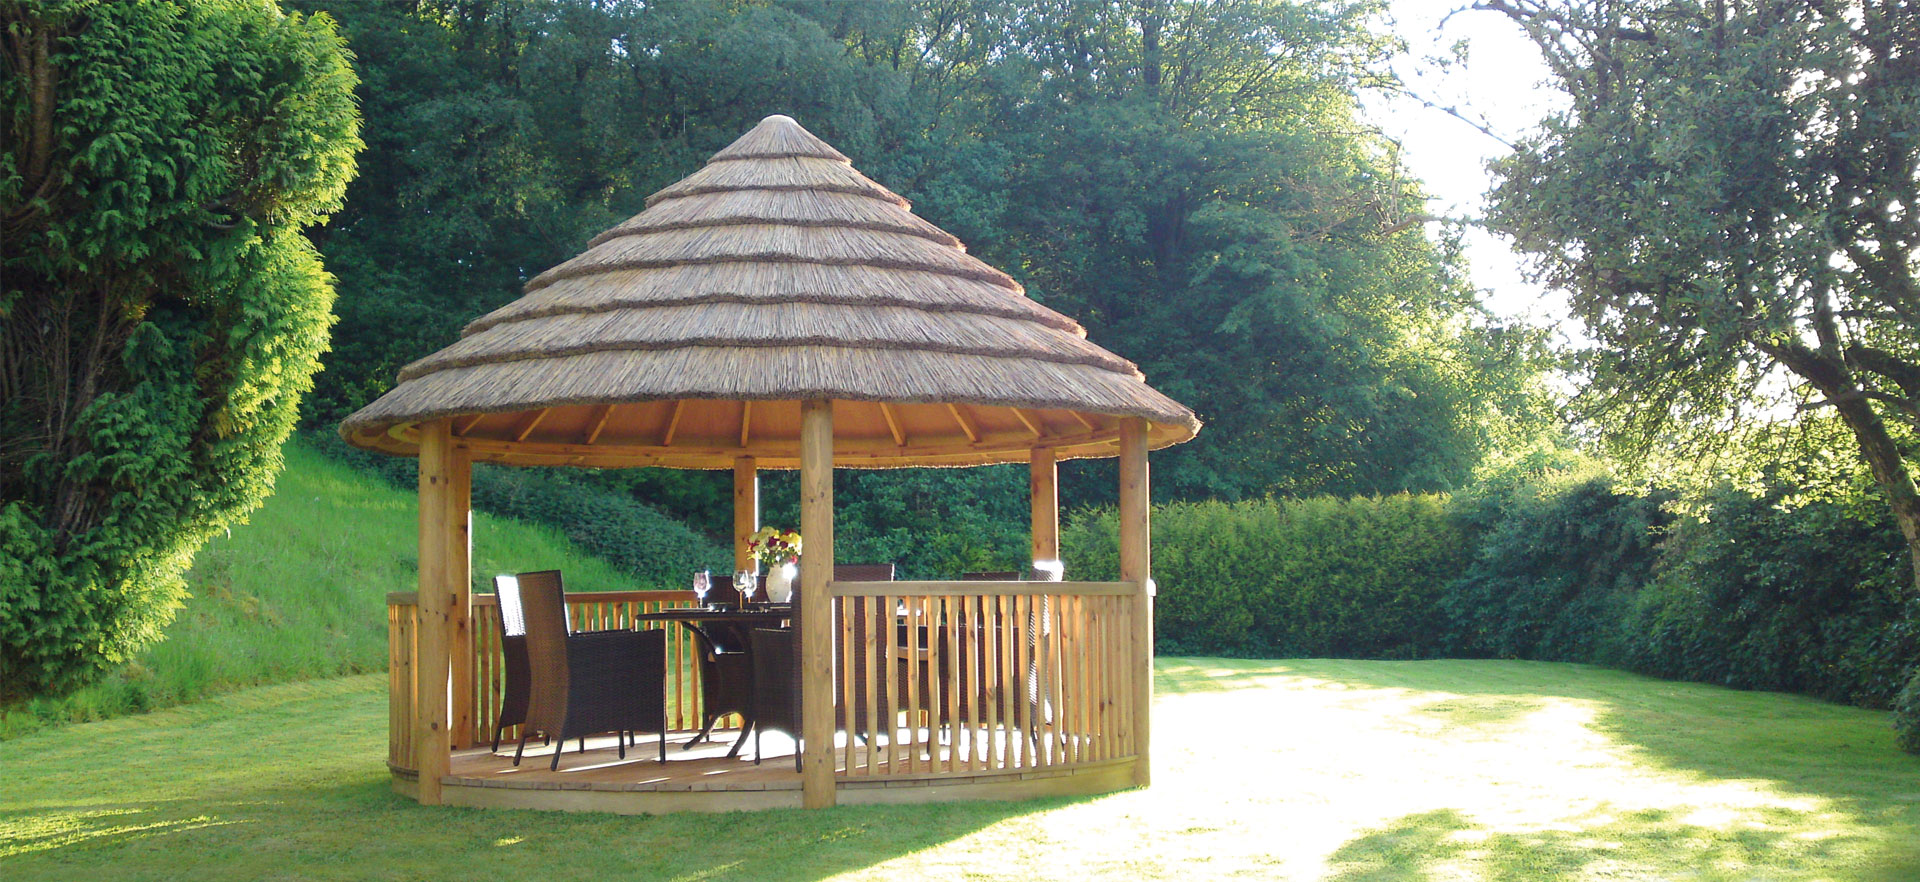 3.5 metre luxury thatched gazebo in cove of grass and foliage